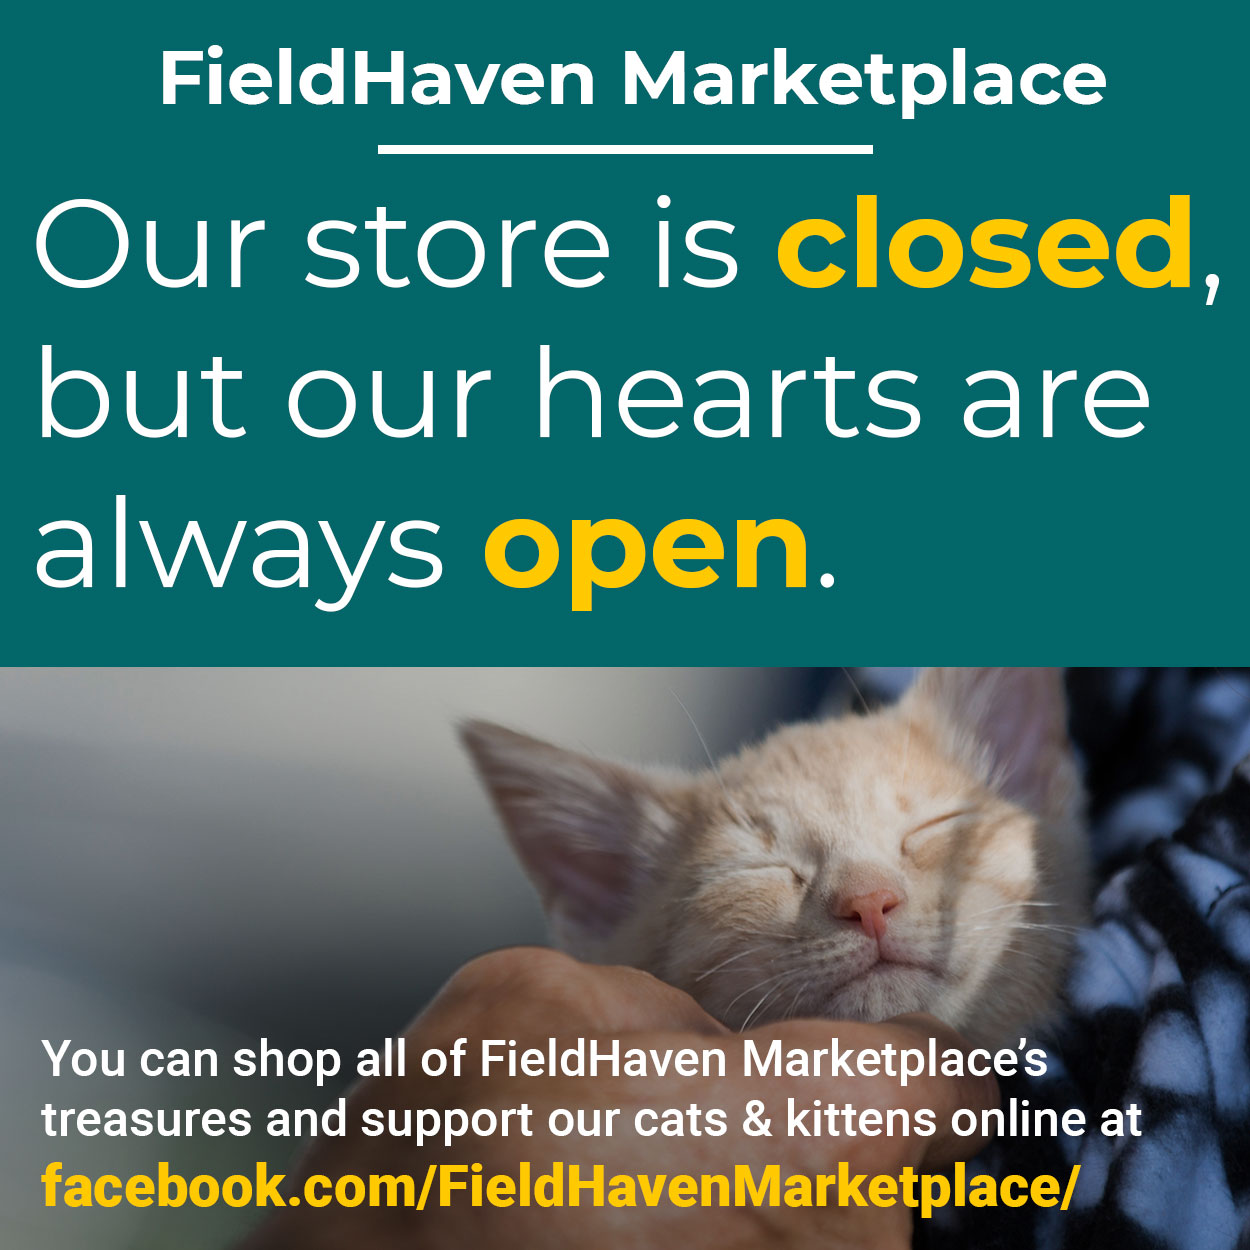 Our store may be closed, but our hearts are always open. You can shop all of FieldHaven Marketplace's treasures and support our cats & kittens online at facebook.com/FieldHavenMarketplace/